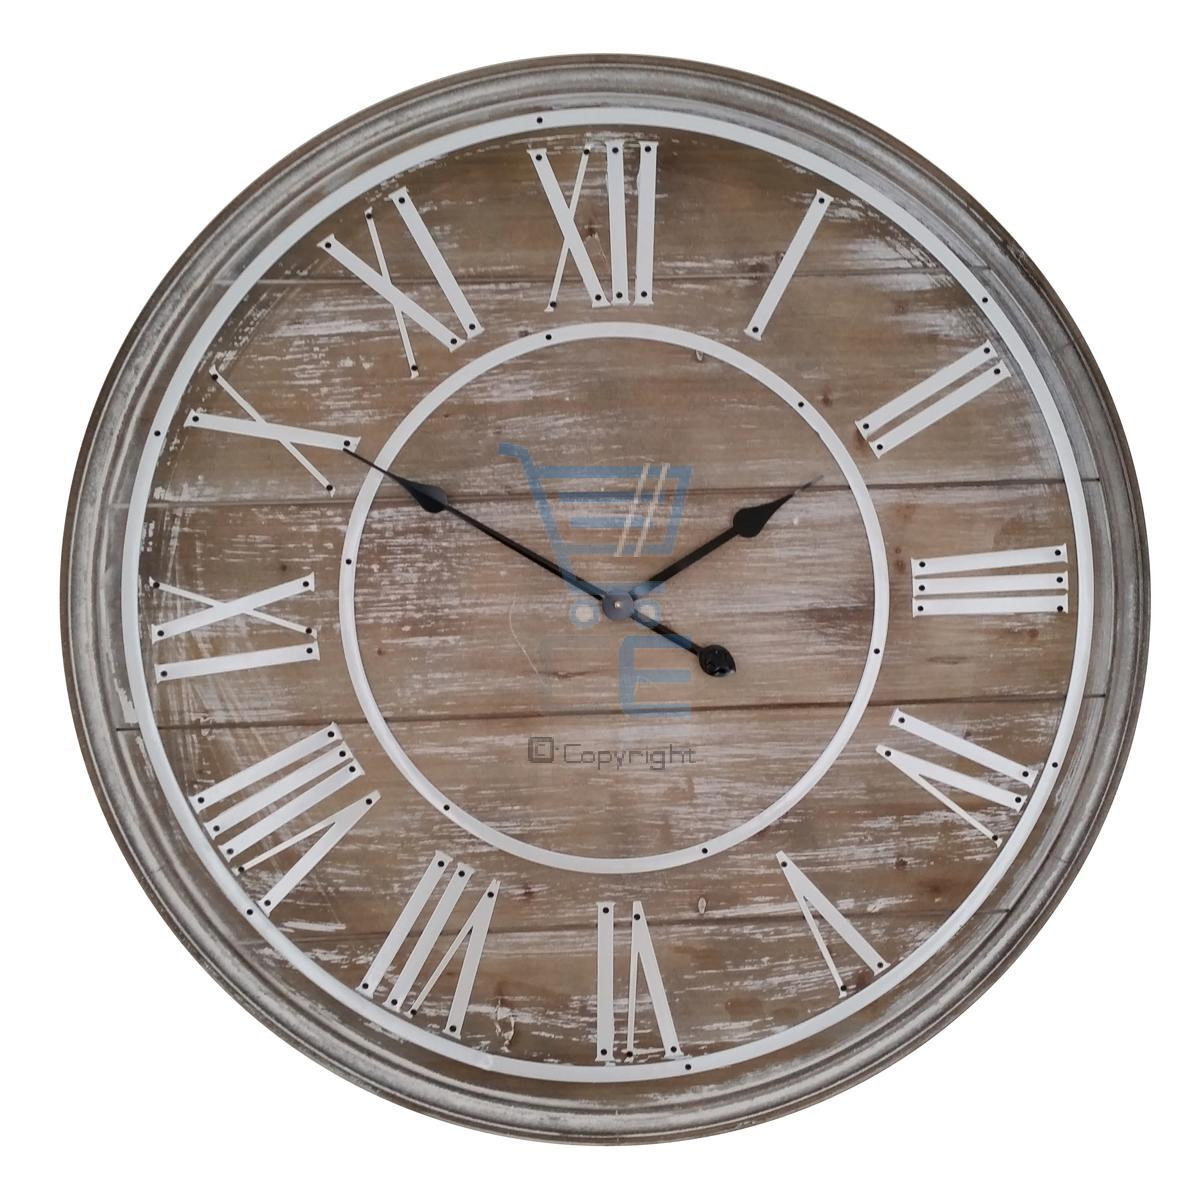 80cm holz wanduhr vintage shabby chic gro jethelm r mische ziffern ebay. Black Bedroom Furniture Sets. Home Design Ideas